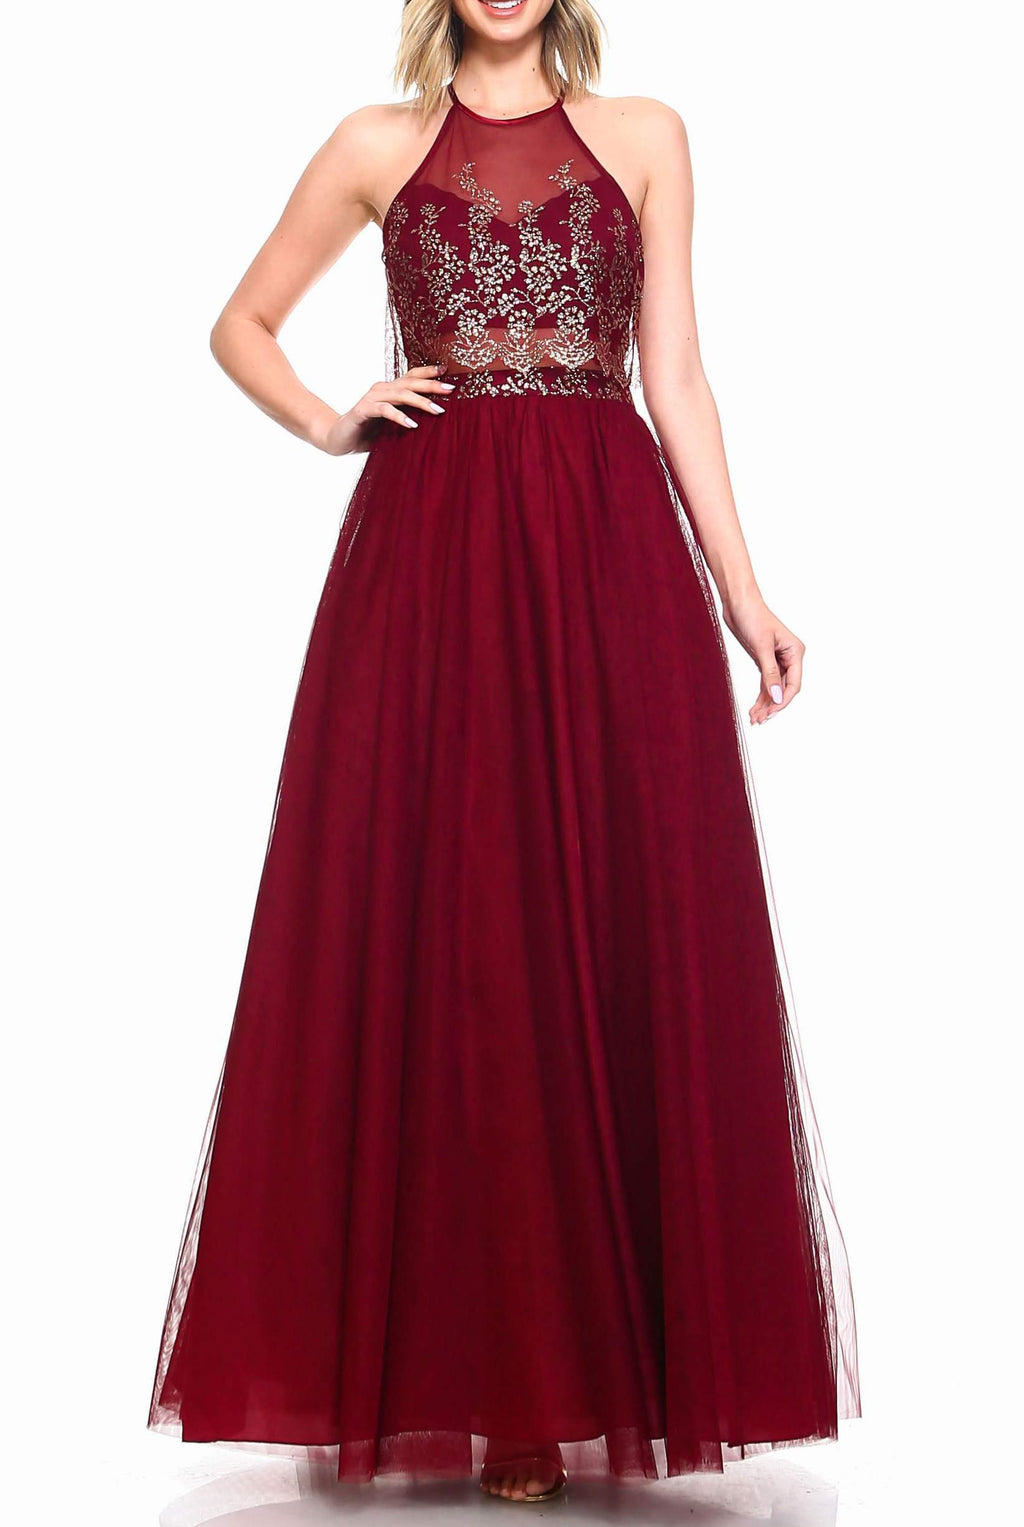 Teeze Me | Sleeveless Halter Glitter Embellished Illusion Popover Top Long Dress | Burgundy/Gold - Teeze Me Juniors Apparel